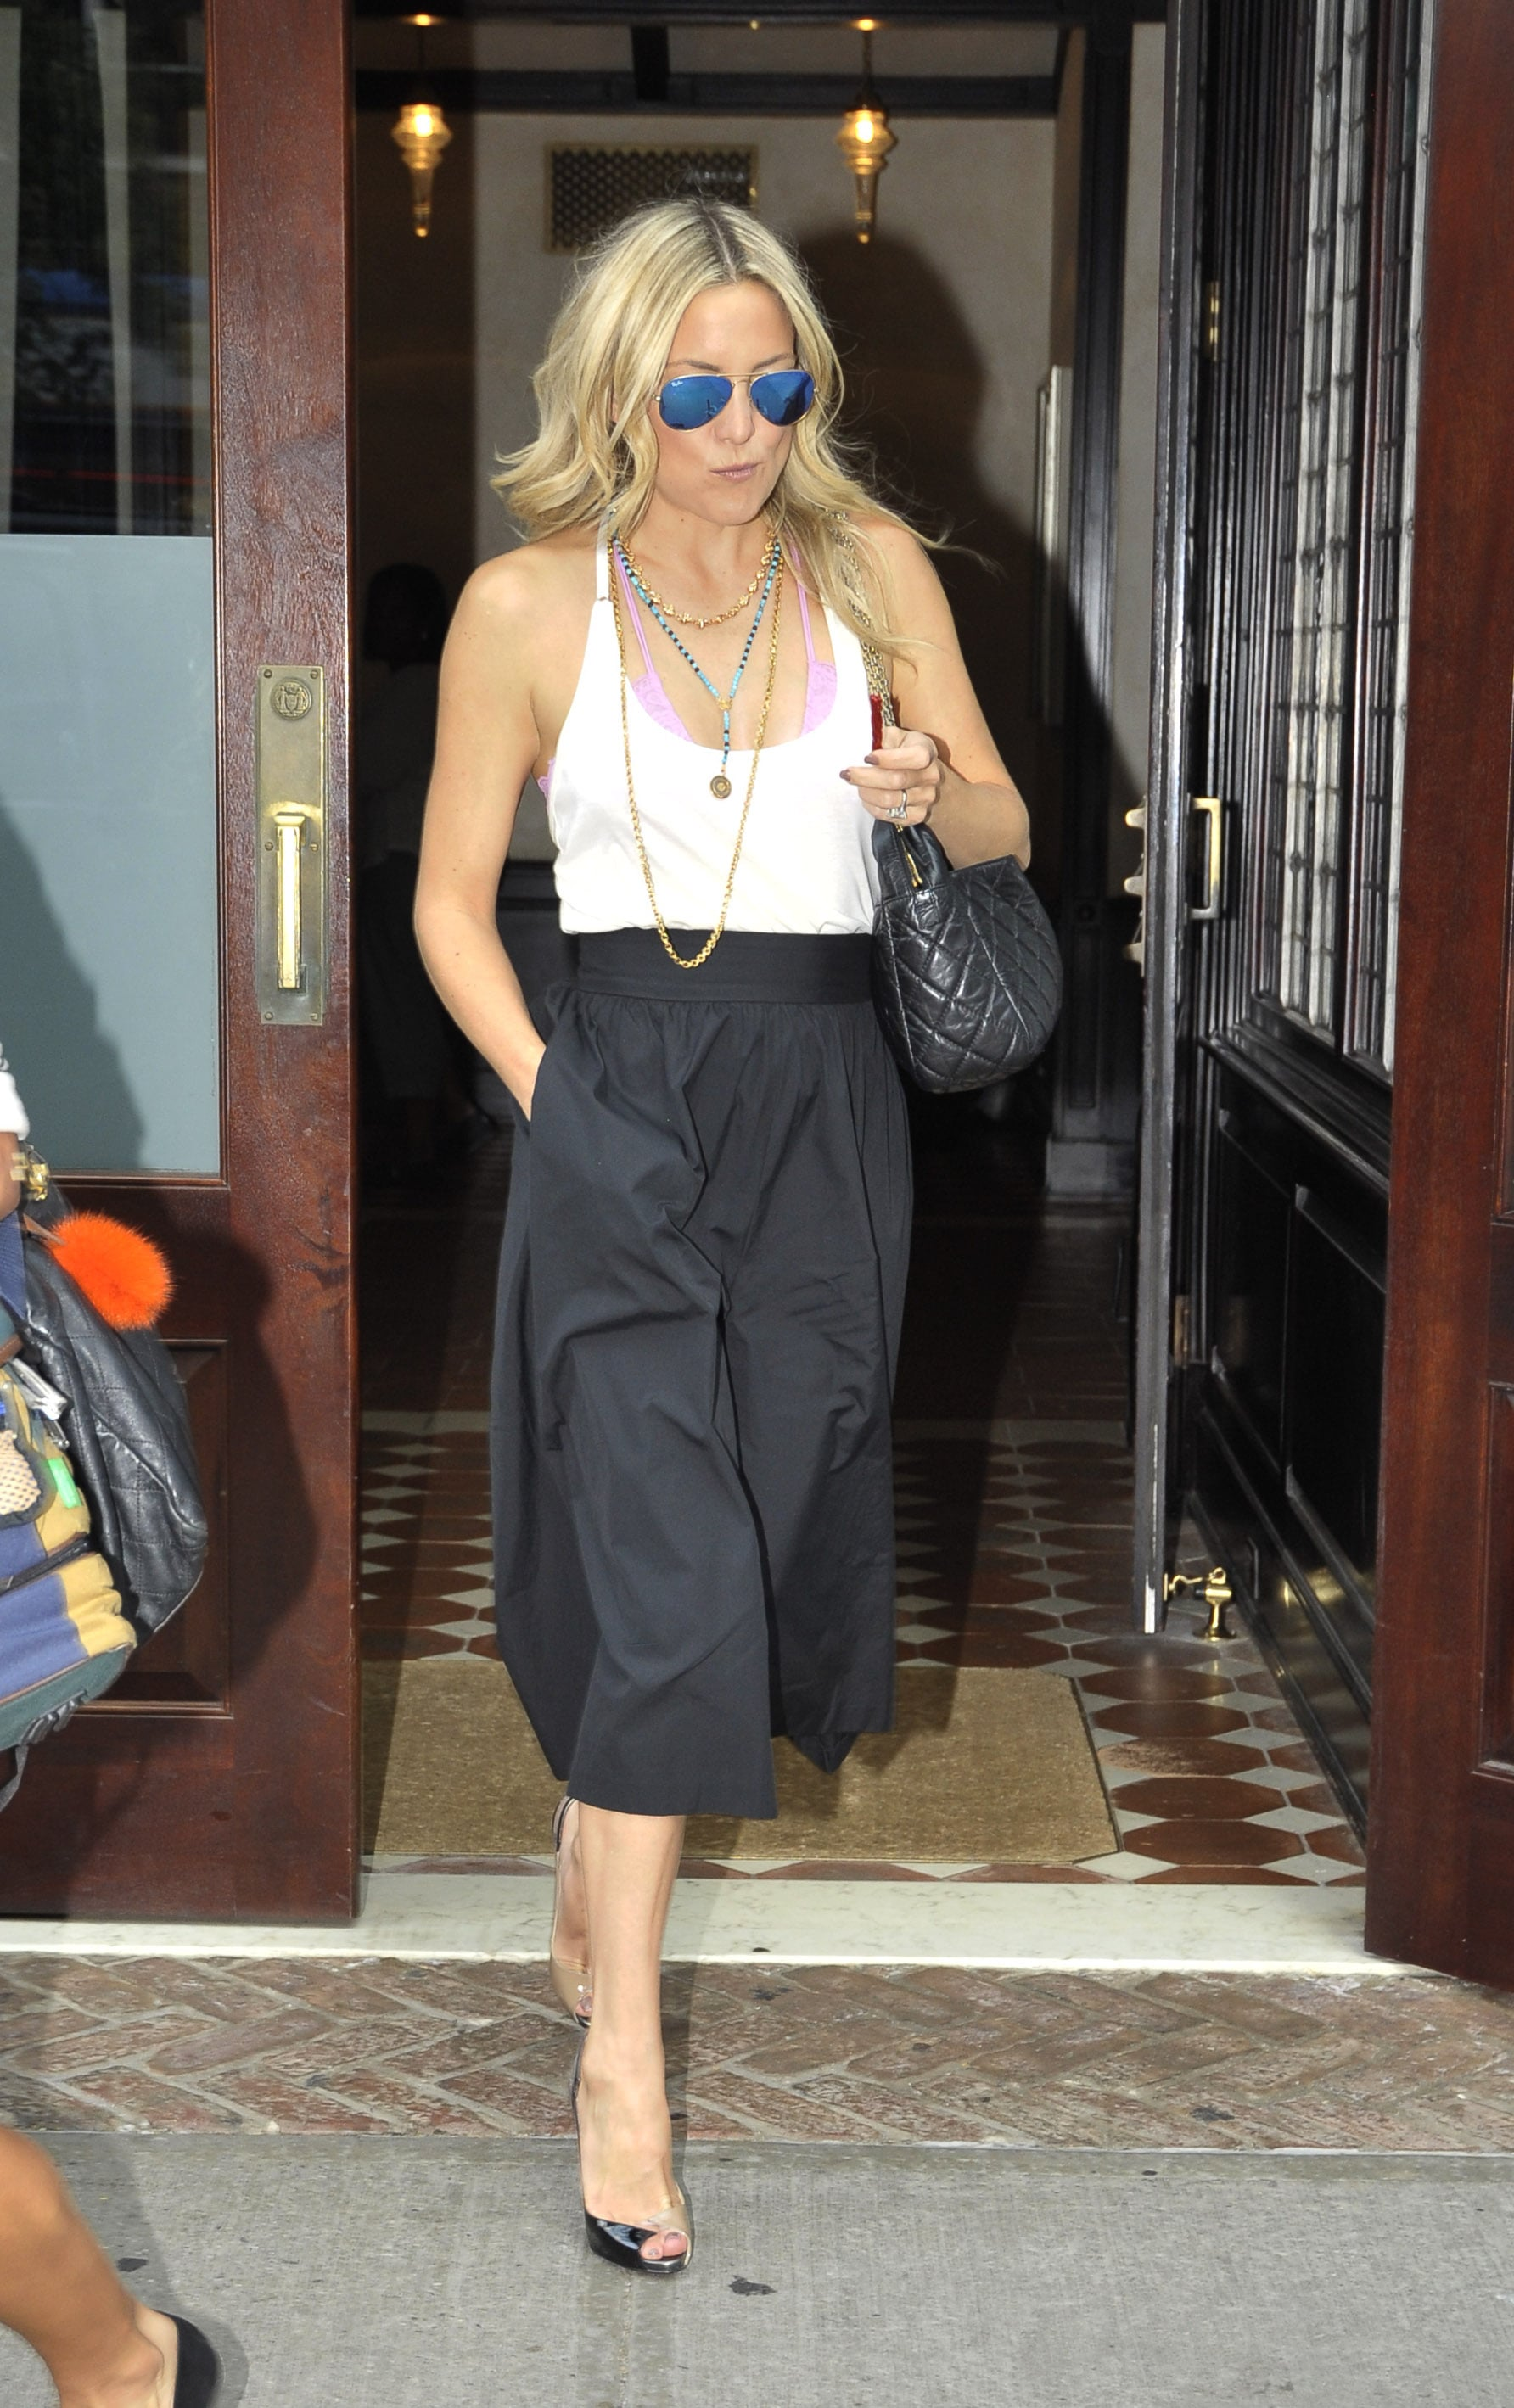 Kate chose to pair her trousers with a low-cut tank, so as to let her sugar-pink bralette straps peek out. By layering a couple of beaded necklaces on top and slipping on her blue-mirrored Ray-Ban aviators, she brought her colorful personality to light. See how you can roll like Kate below. The look is totally obtainable —as for those flawlessly tousled beach waves, that's all Kate.